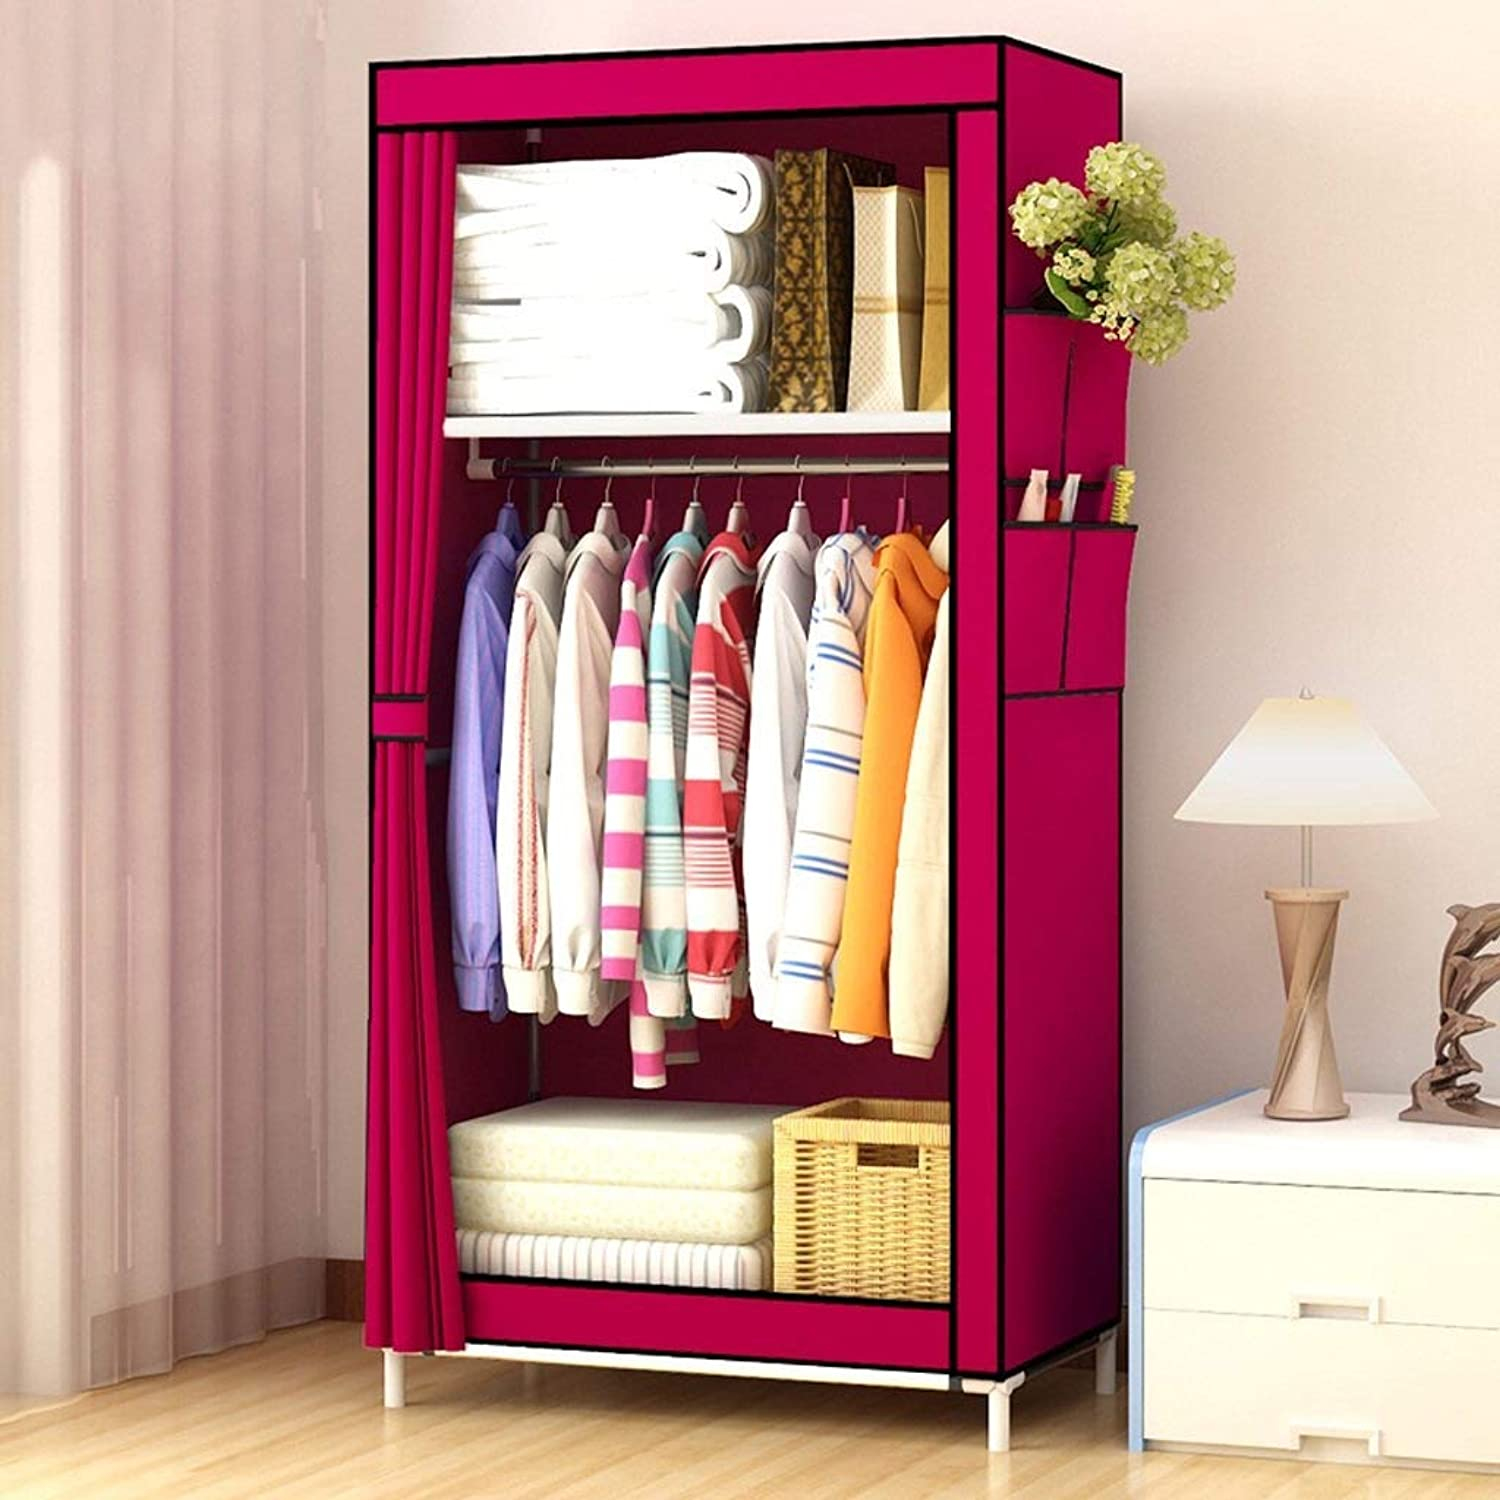 PingFanMi Simple Cloth Wardrobe, Indoor and Outdoor Clothes Hanging Wardrobe Small Canvas Fabric Cabinet, Combination Wardrobe Storage Floor Cabinet Detachable, Frame Structure (Storage Storage)